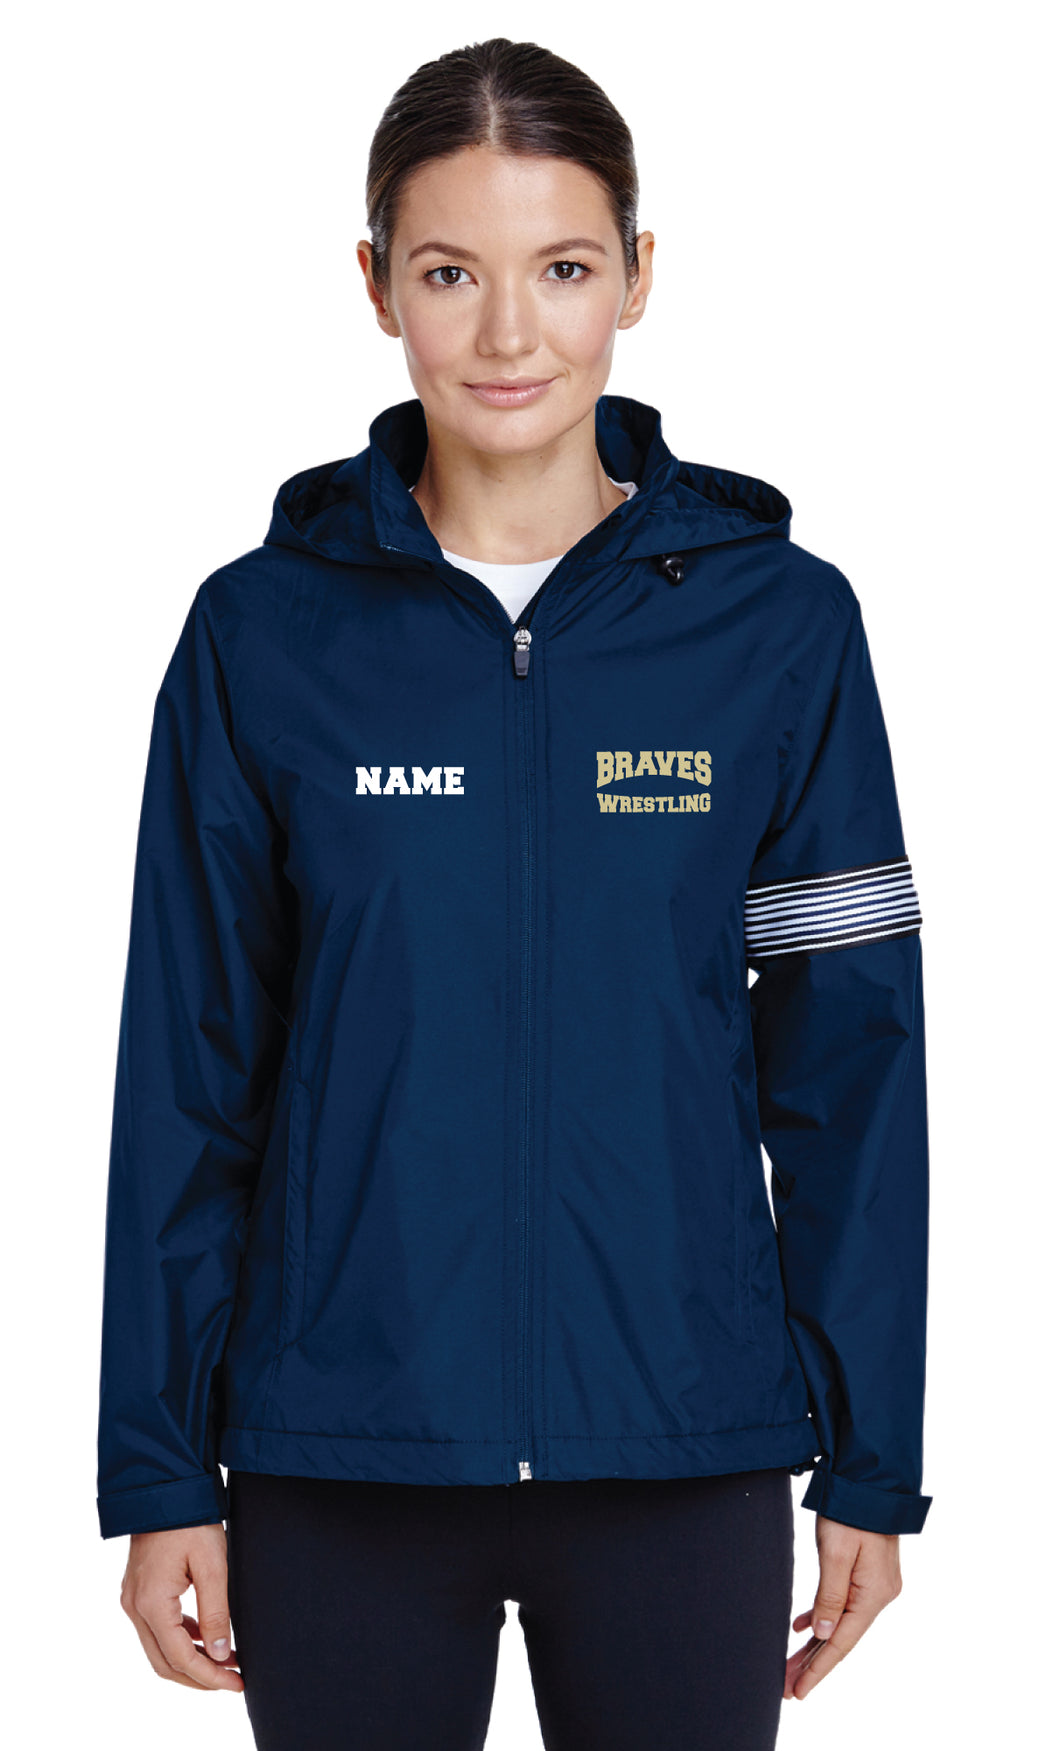 Braves Wrestling All Season Hooded Women's Jacket - Navy - 5KounT2018